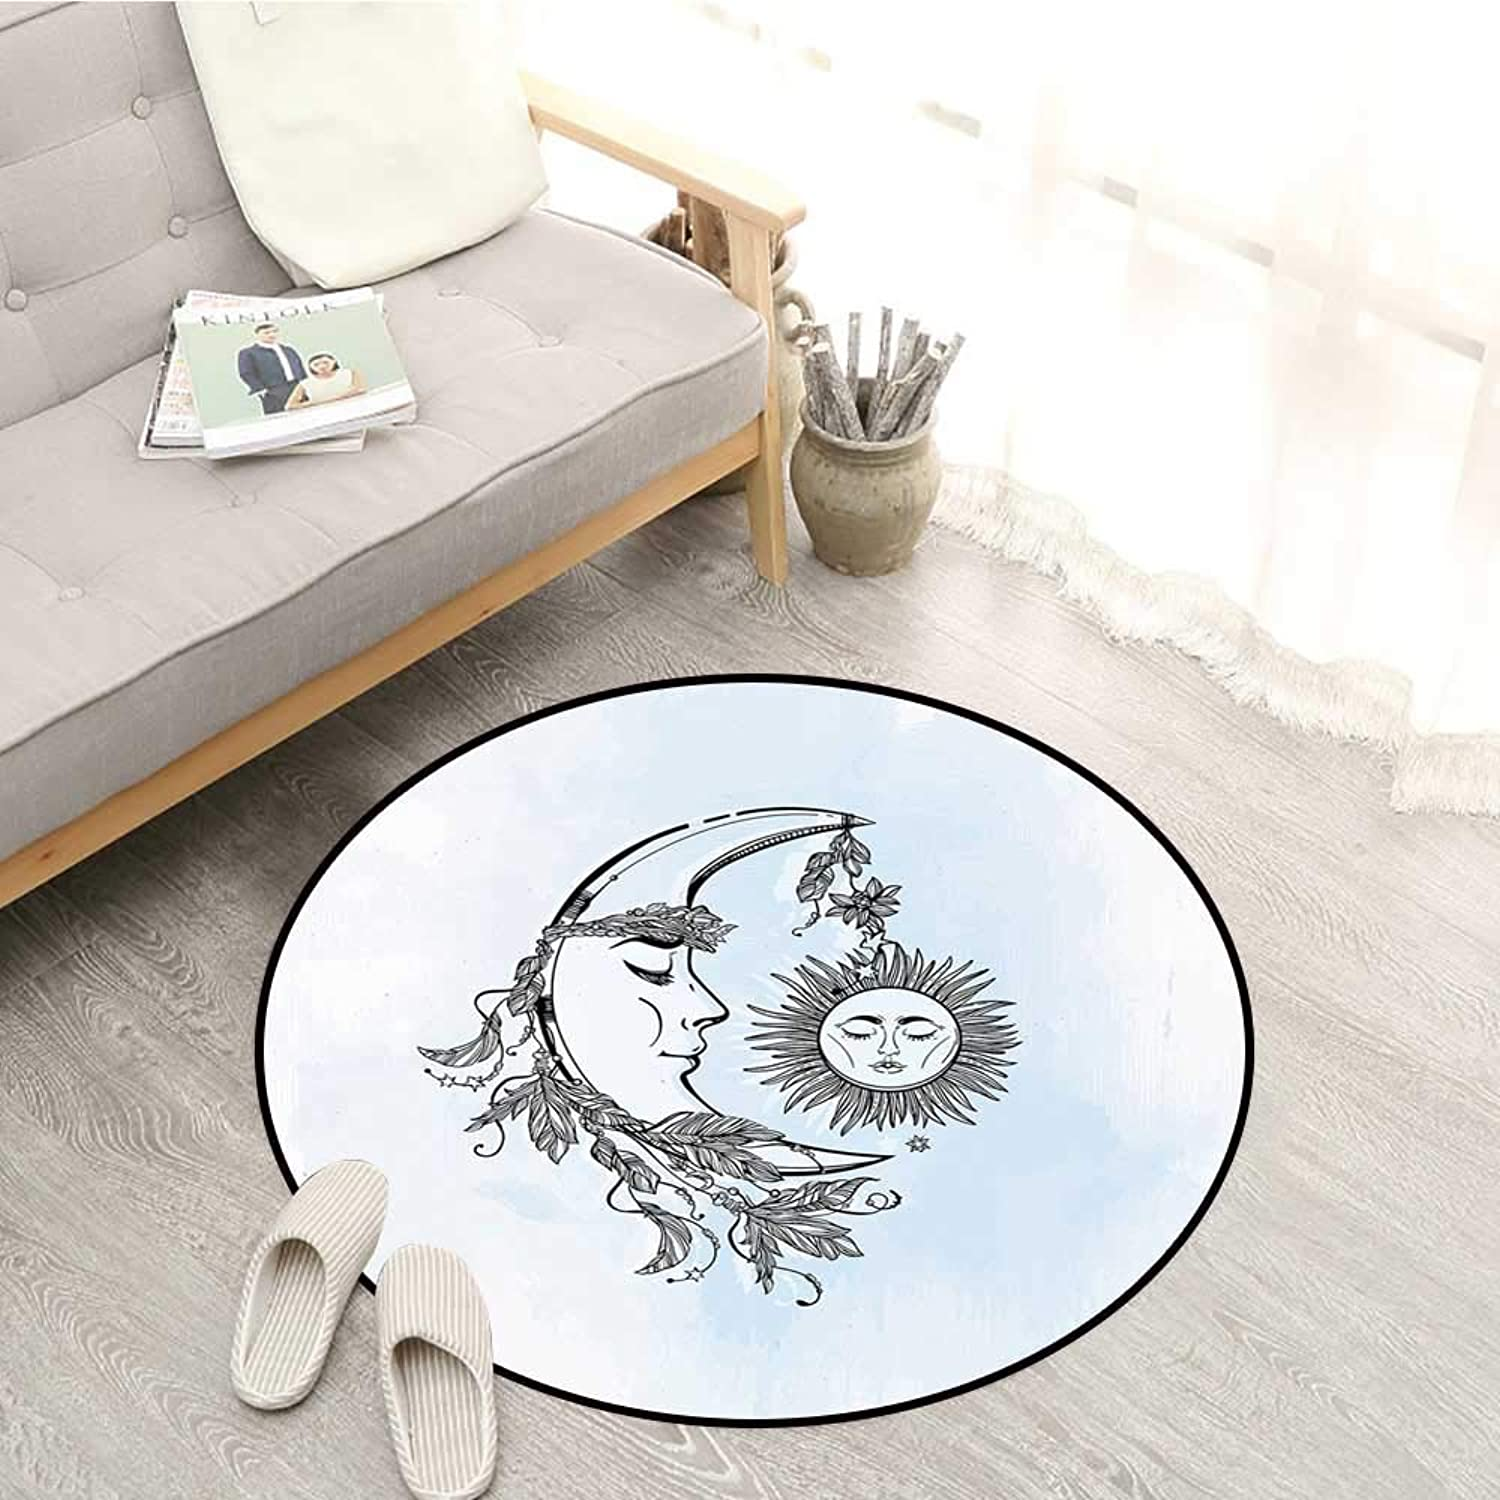 Sun Living Room Round Rugs Hand Drawn Monochrome Moon with Feather Crown Leaves and Sticks Spiritual Sofa Coffee Table Mat 4'11  Pale bluee Black White